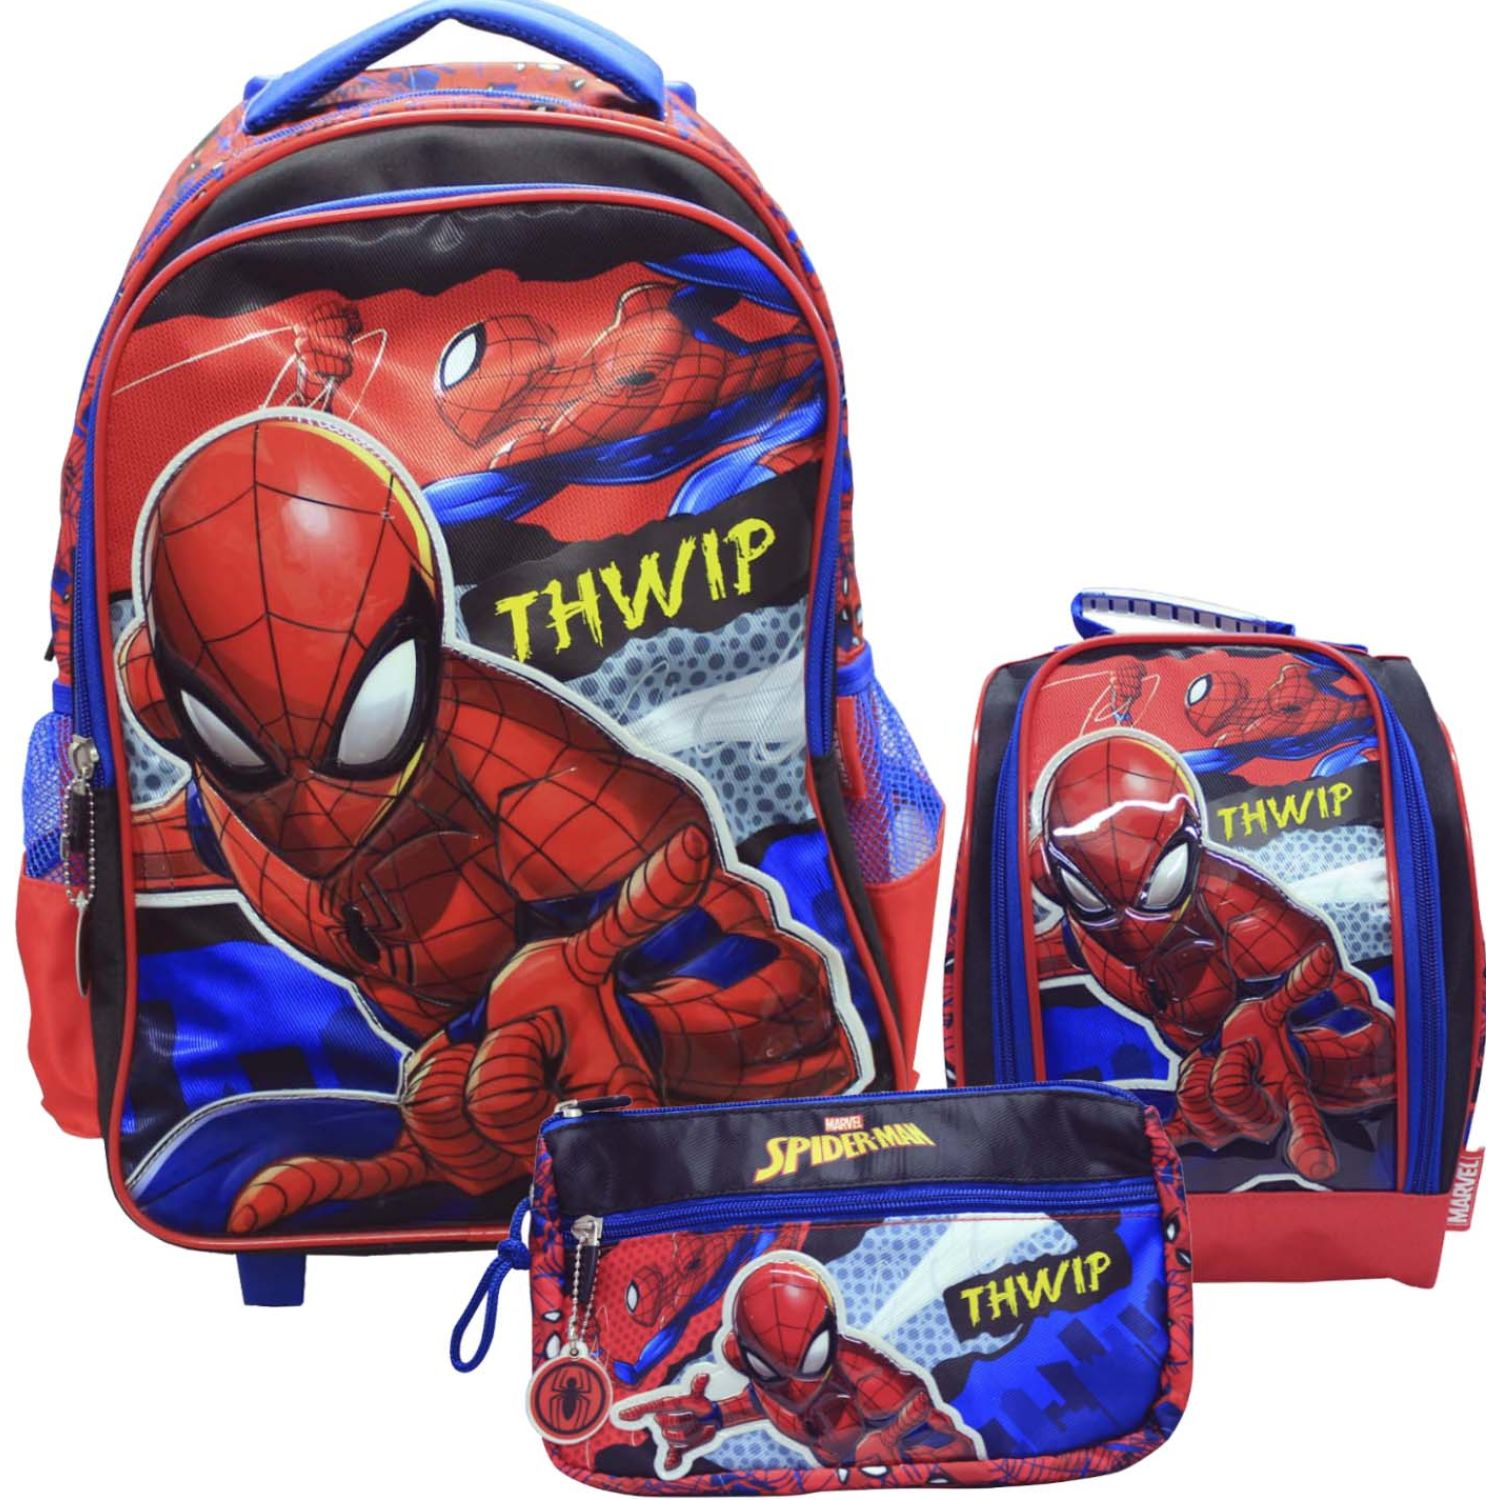 Spiderman artesco - set spiderman thwip Rojo mochilas